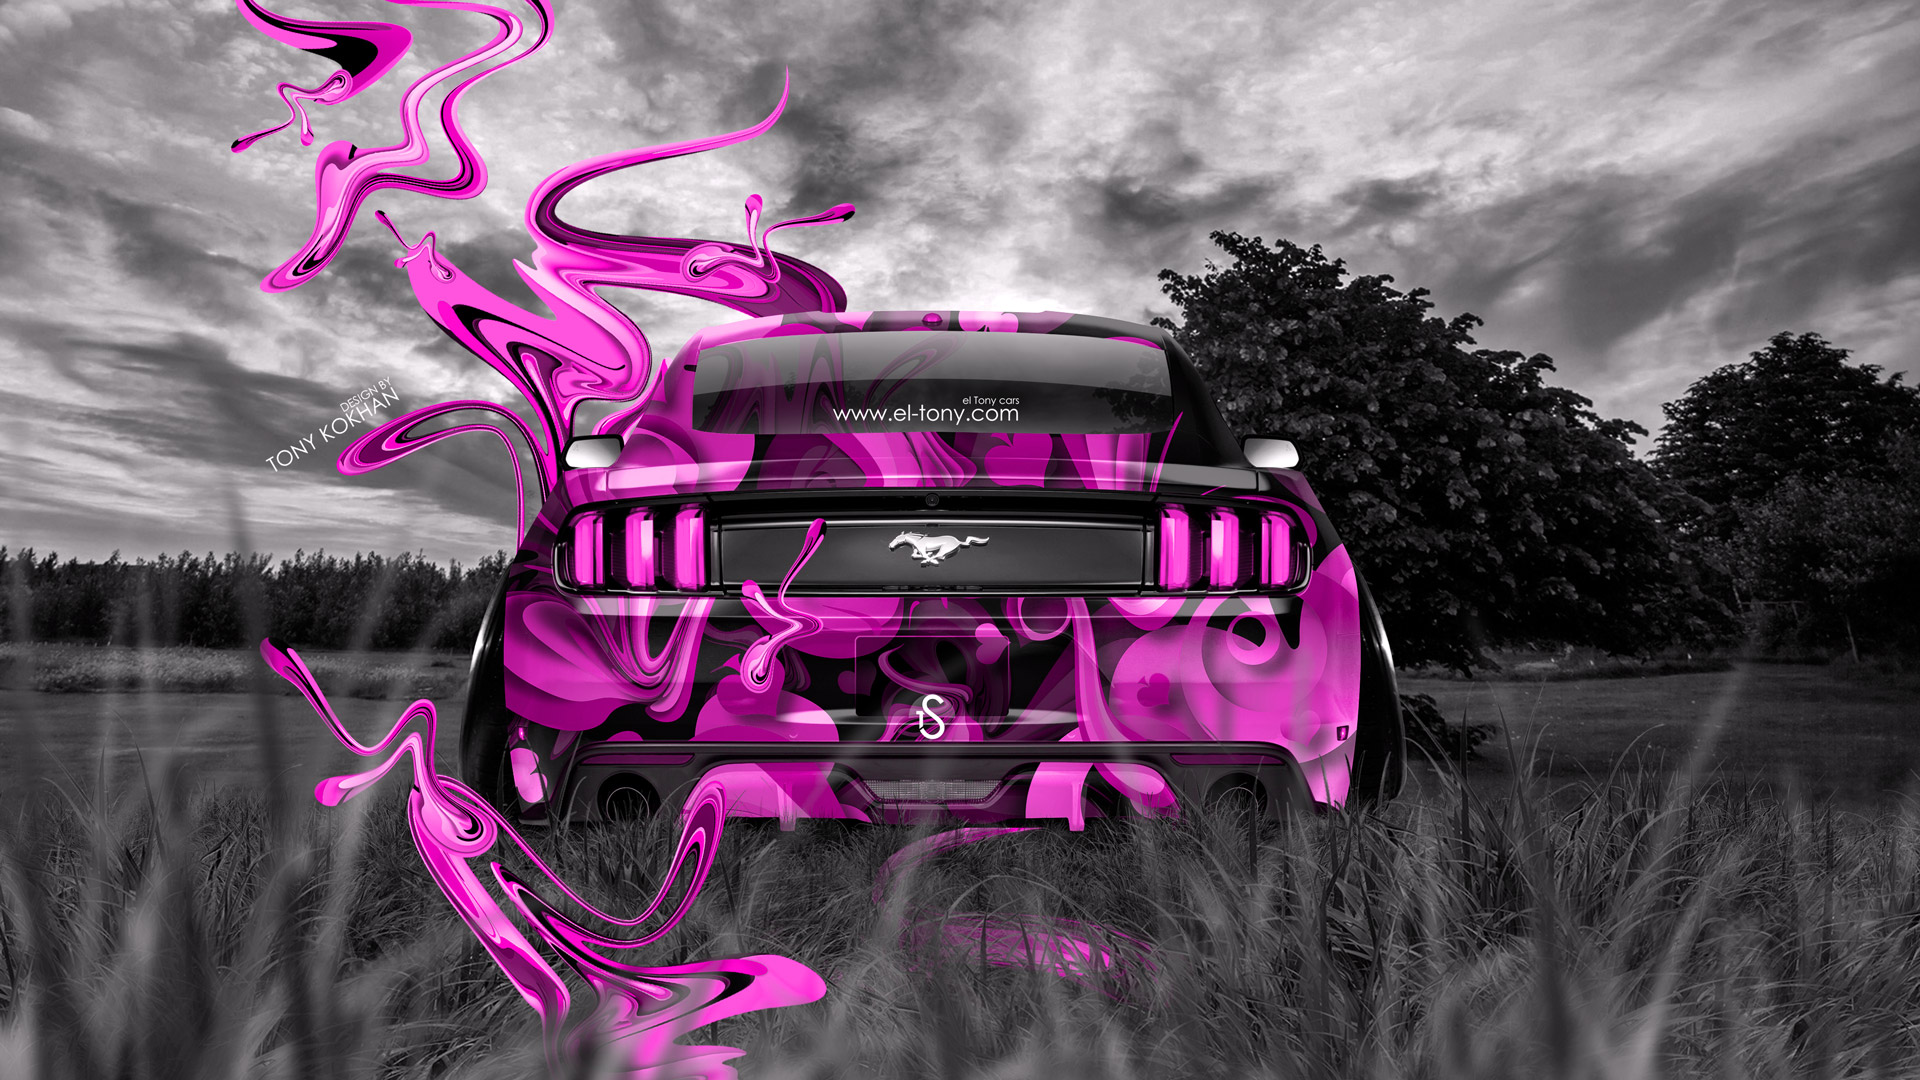 Neon Car Wallpaper With Girls Ford Mustang Muscle Back Crystal Nature Car 2014 El Tony